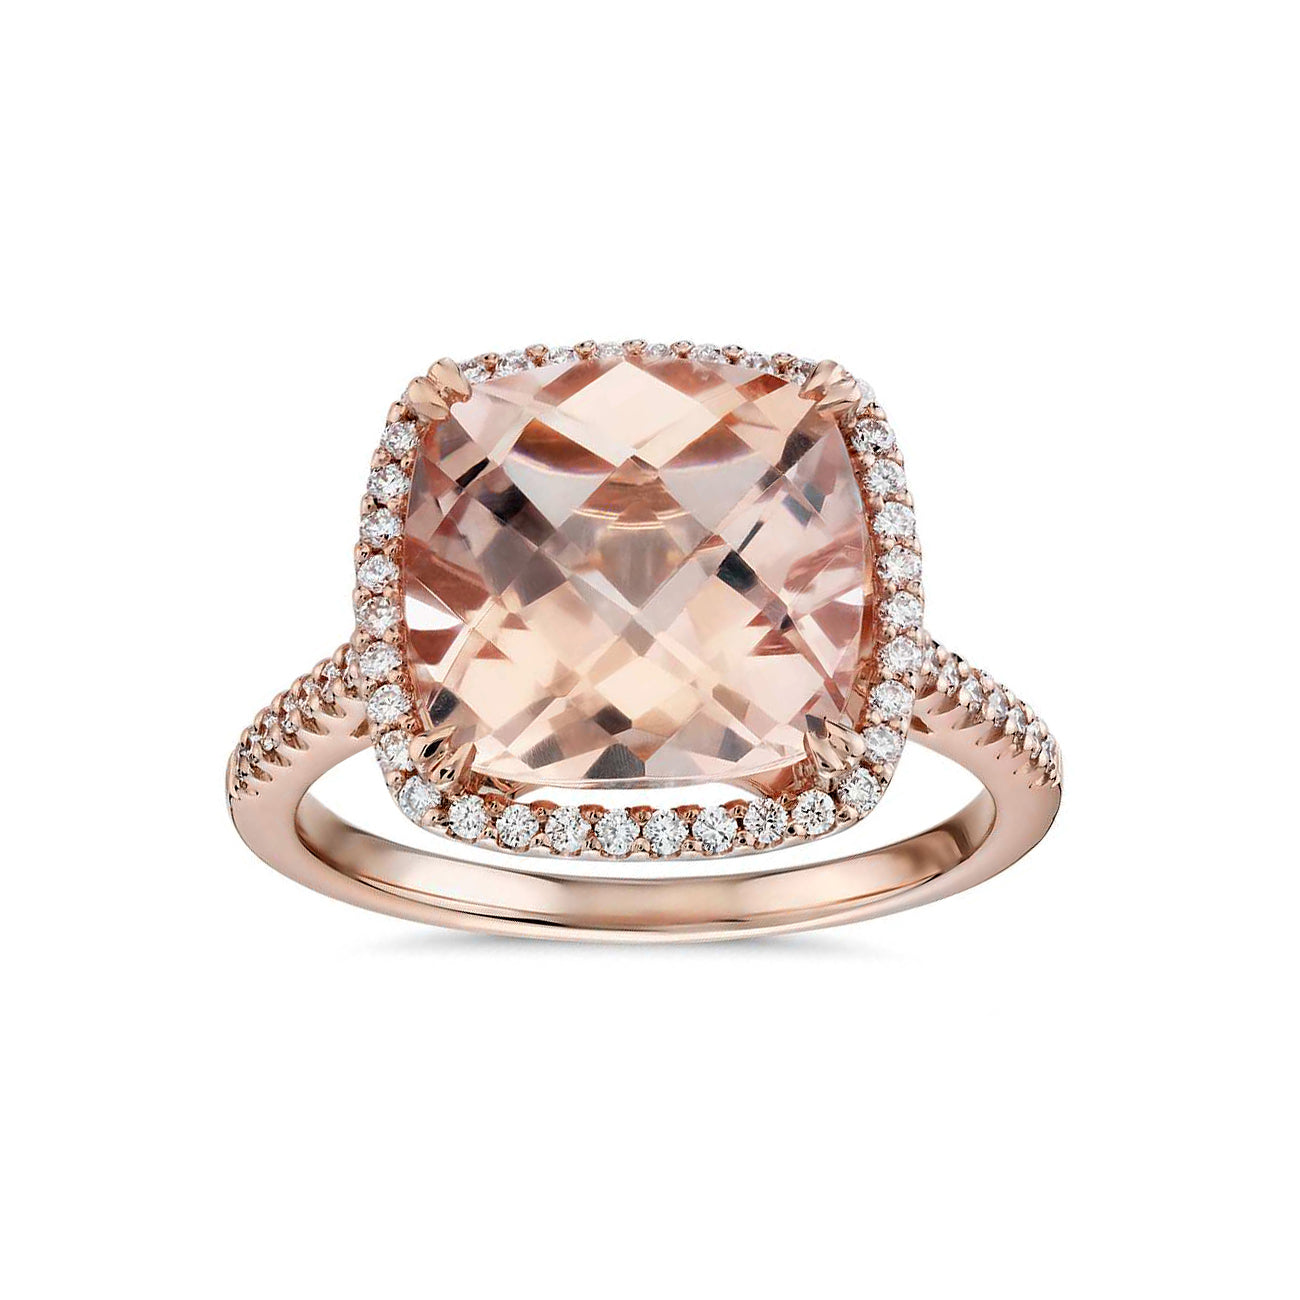 Cushion cut morganite ring with diamonds - 1